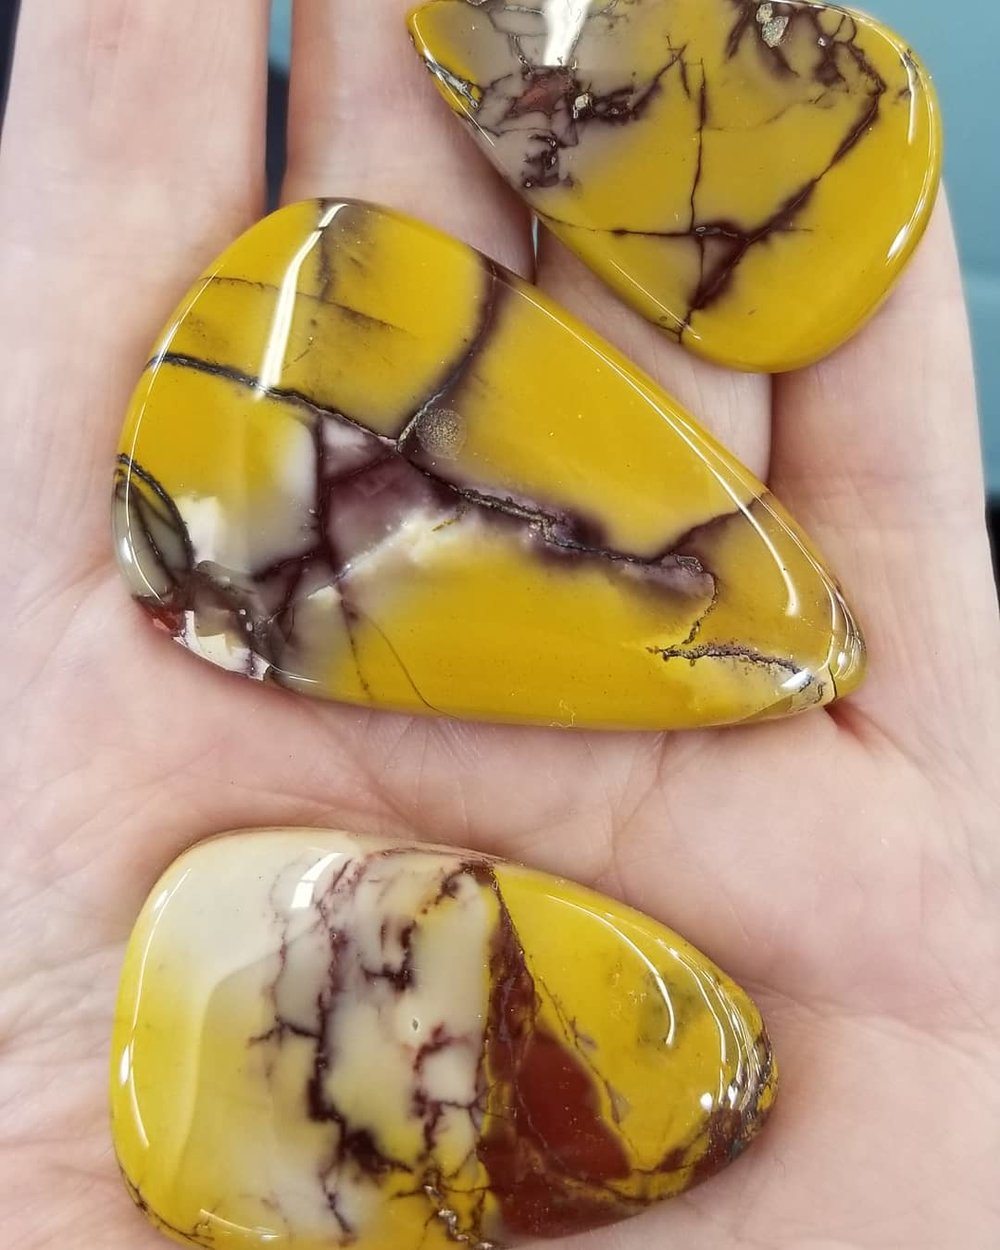 mookaite jasper, chakra healing crystals & gemstones peaceful-island.com, everyday feng shui, car crystals, hypermiling